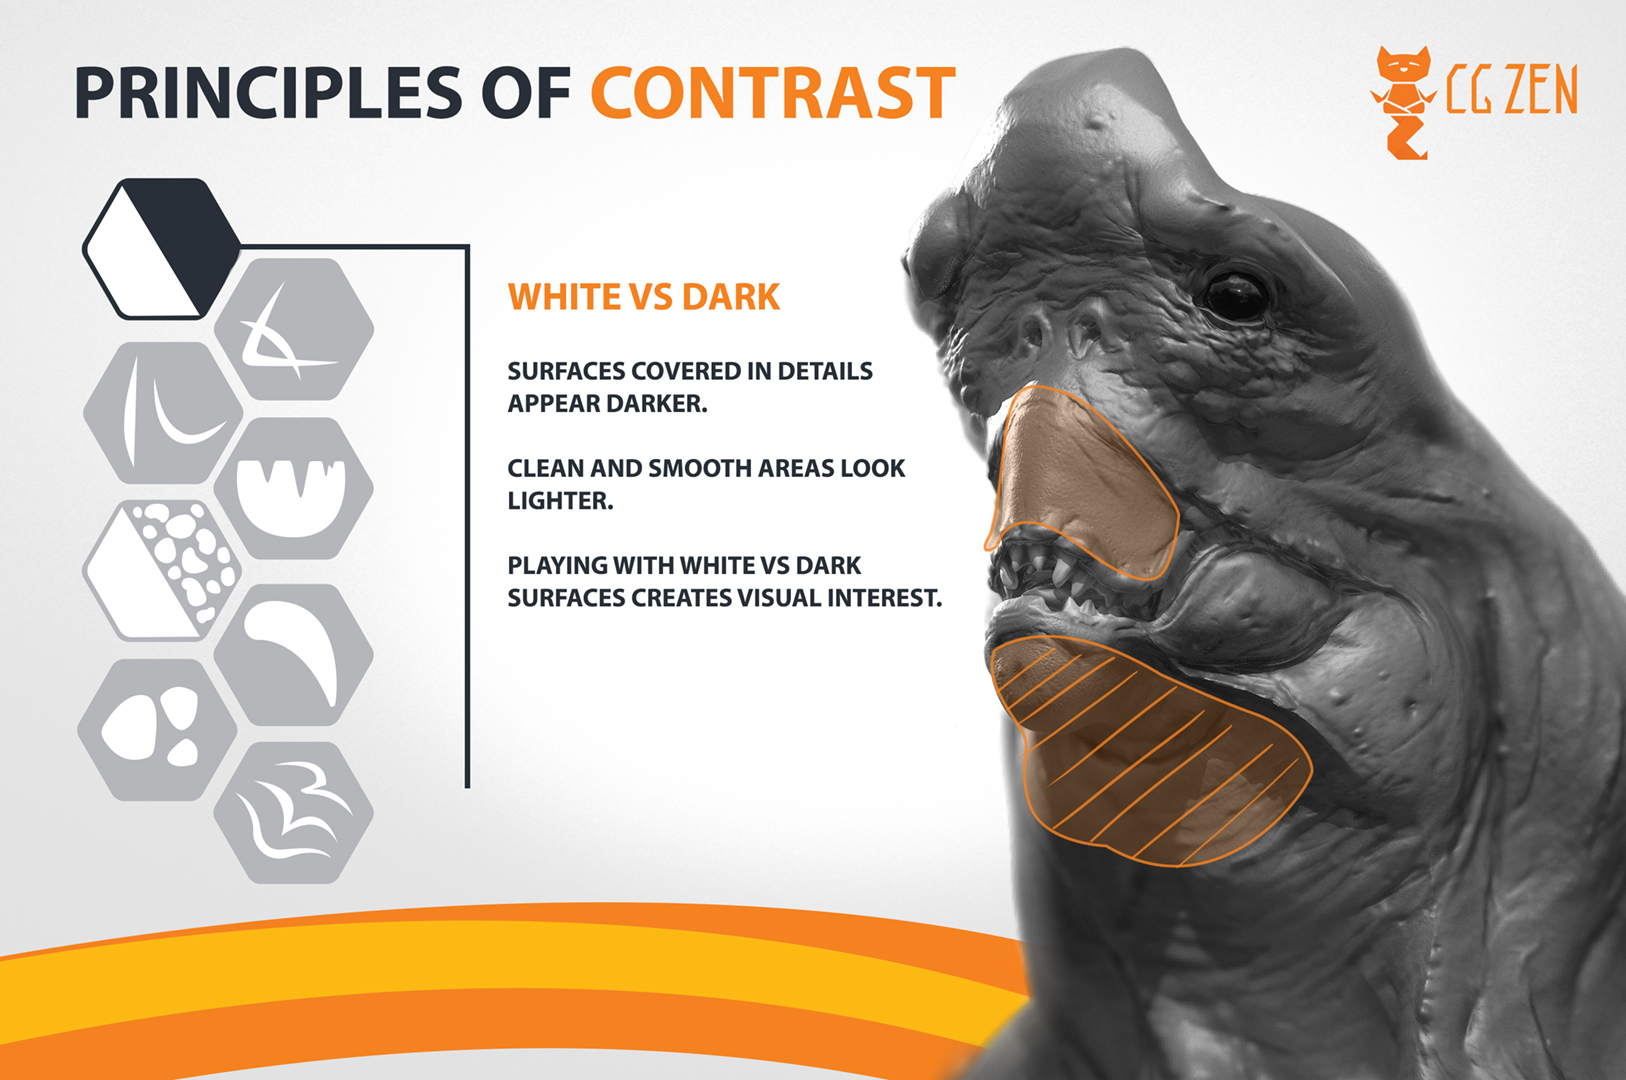 09-contrast-design-light-vs-dark-cgzen-EN